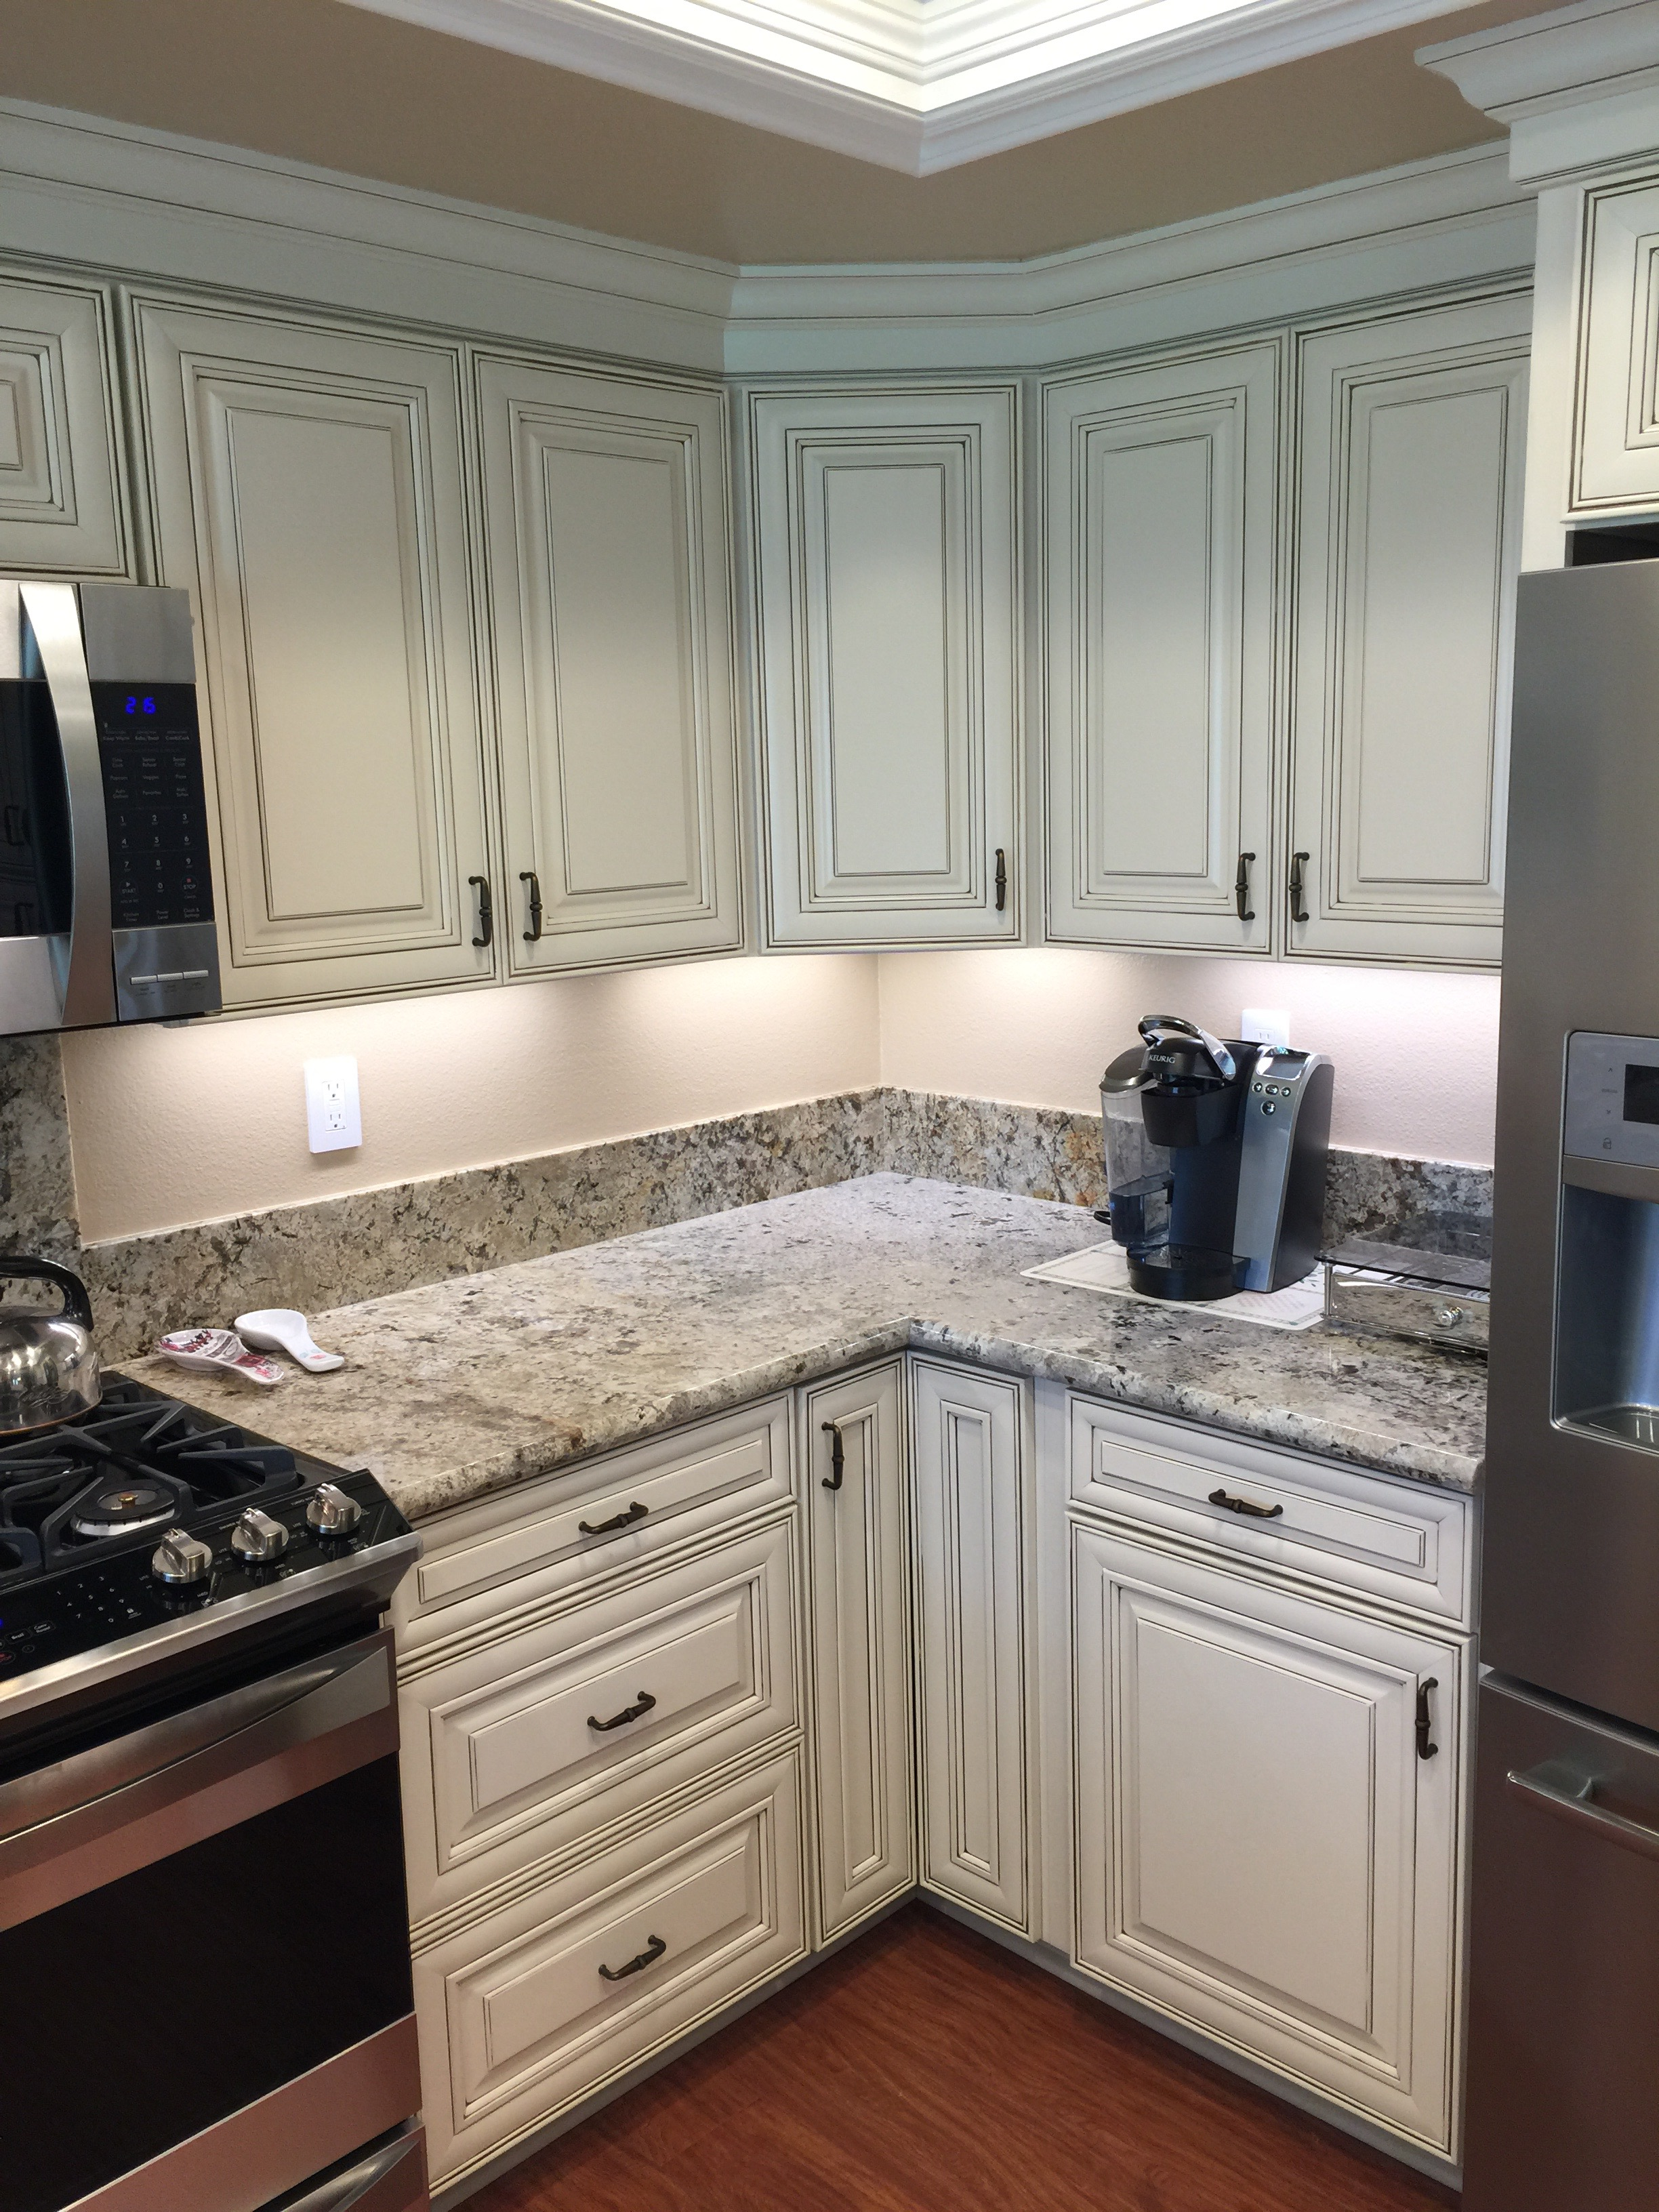 Custom cabinets express your style inspired remodels for Kitchen cabinets express